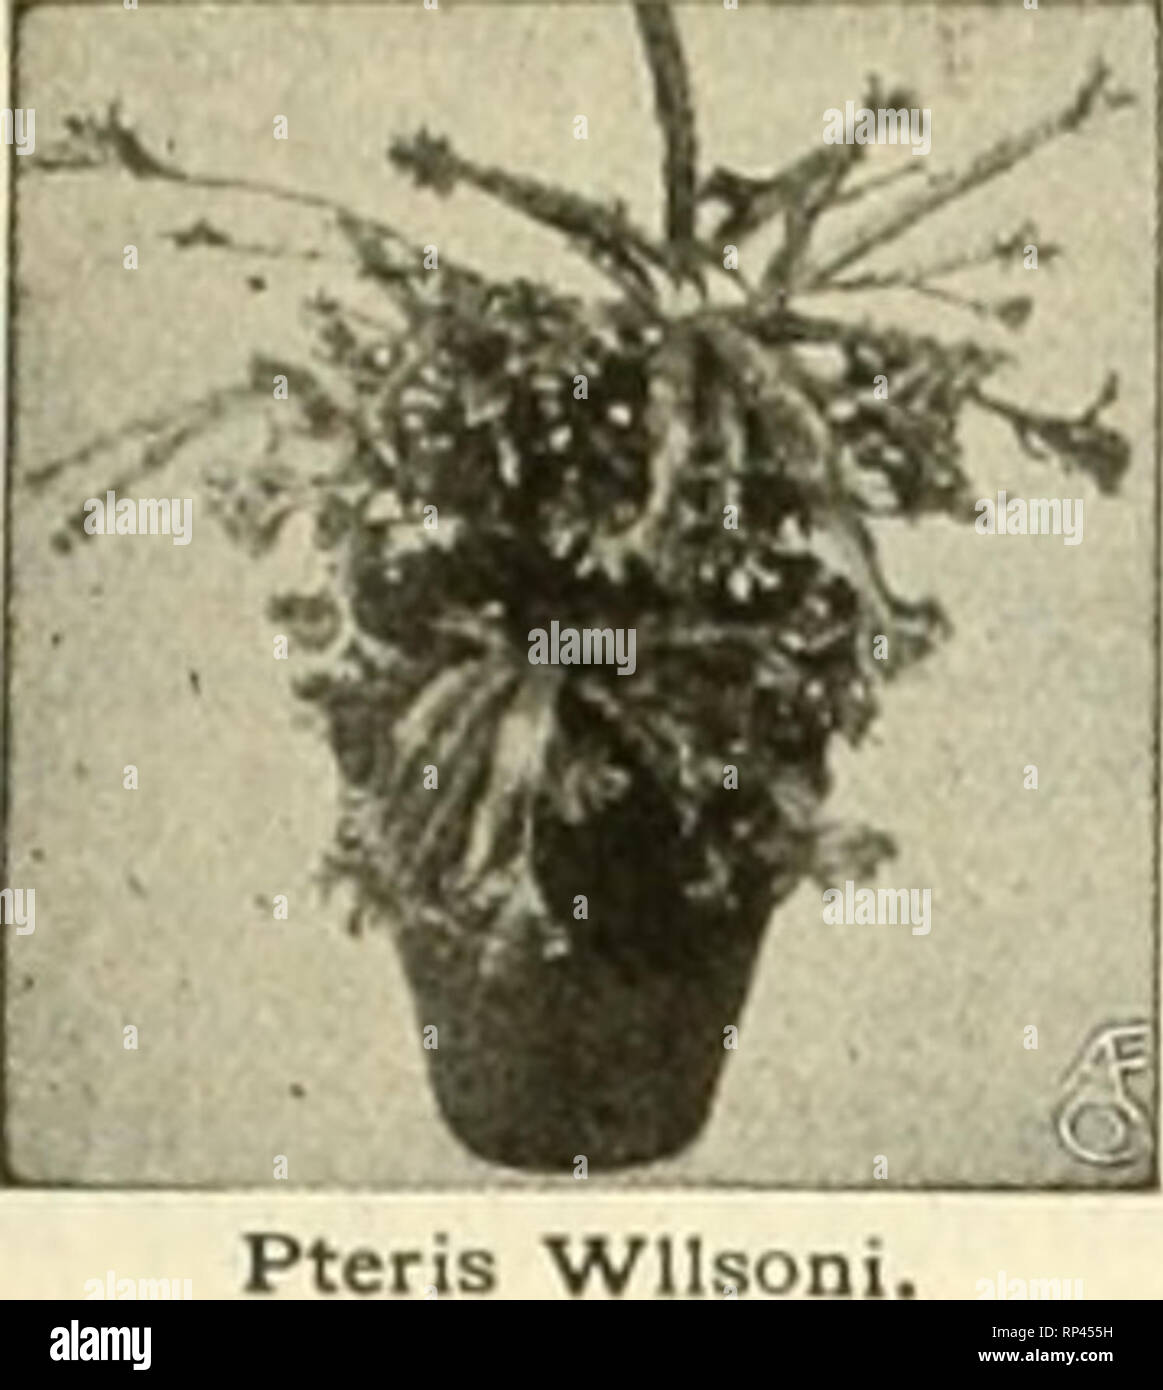 . The American florist : a weekly journal for the trade. Floriculture; Florists. igii. The American Florist. 761. Pteris Wilson WITTBOLD'S Plants ARE BEST 1 fe 1 ^ p 'i' Pteris Serrulata Order Today and Avoid the Risk of Cold Weather Shipments Bedding Plants p. de Bailey 2-ln., $2.60 per Aohryanthes, 100. Ageratum, Stella GorDey and Princess Pauline, 2-ln., $2.00 per 100. COLEUS, 2-inoh. Per 100 Pflster, red and yellow 12.00 Beckwlth's Gem 2.00 Golden Bedder g.OO Verschalteltll 2.00 Geraniums, S. A. Nutt, Rose, 2-ls., $2,00 per 100. Gnapballum Lanatum, 2 In., $2.00 per 100. Heliotrope, 2'ln.,  - Stock Image